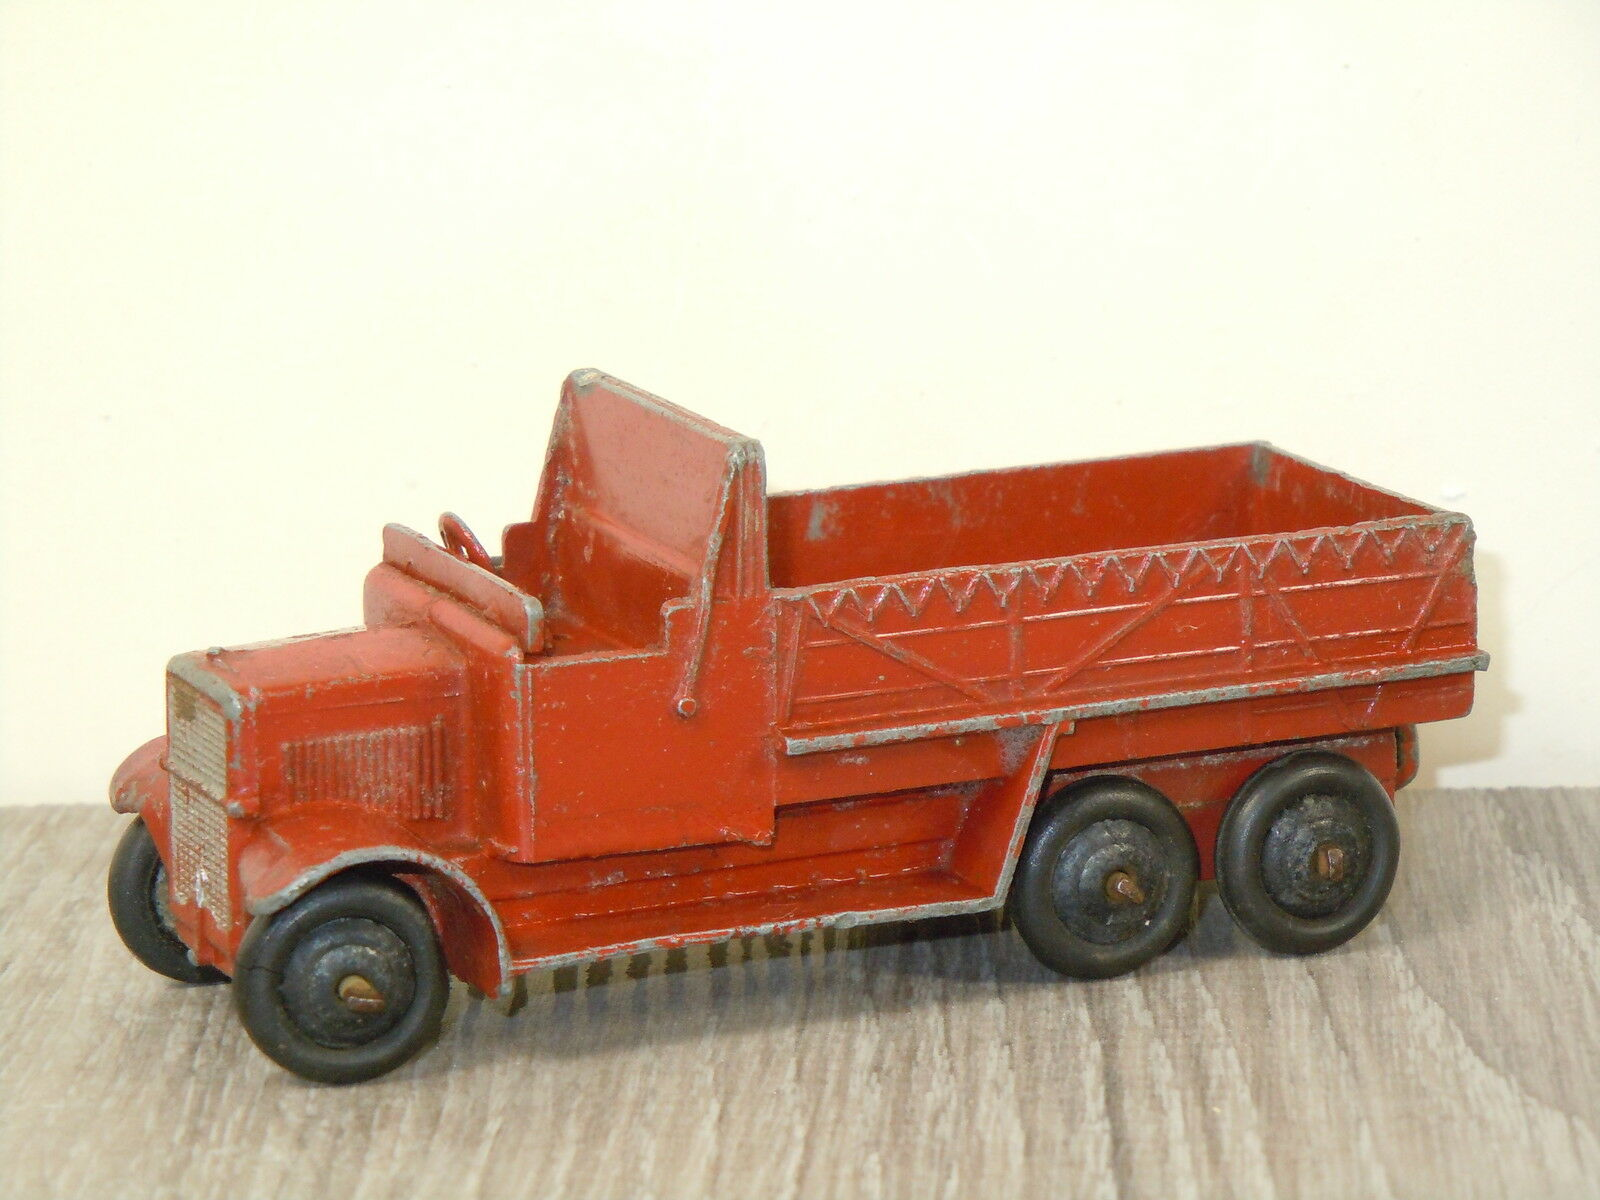 6 WHEEL coverosso Wagon Van DINKY TOYS 25s Inghilterra  288